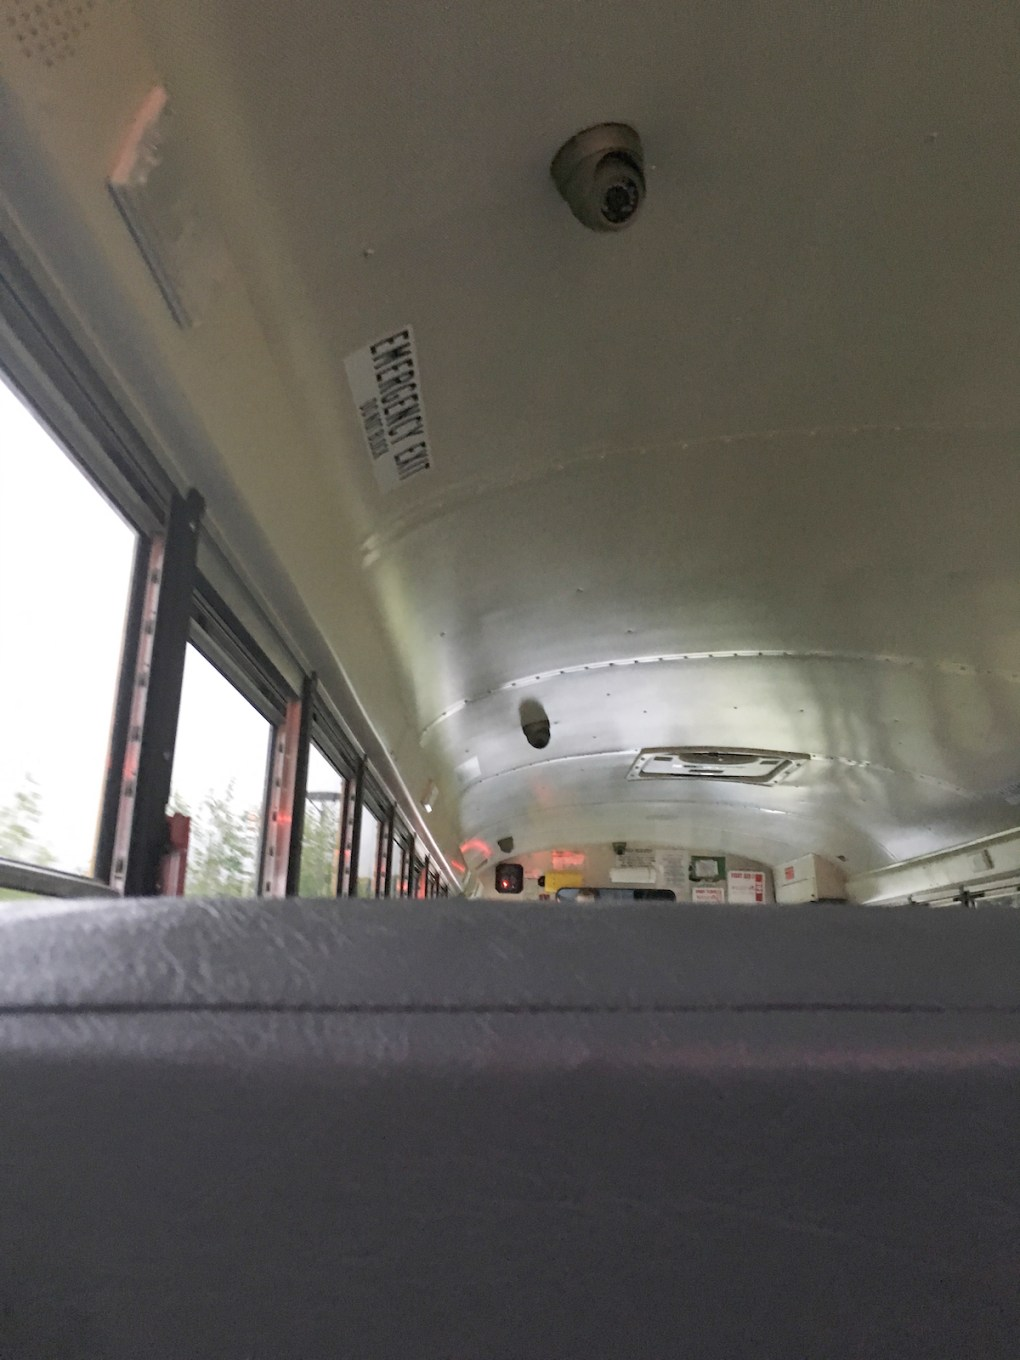 At least four surveillance cameras have been installed in each of the buses that serve Mount Greylock Regional School District. The placement cameras, which are capable of audio recording also, allow the system operator to view all students from various angles.